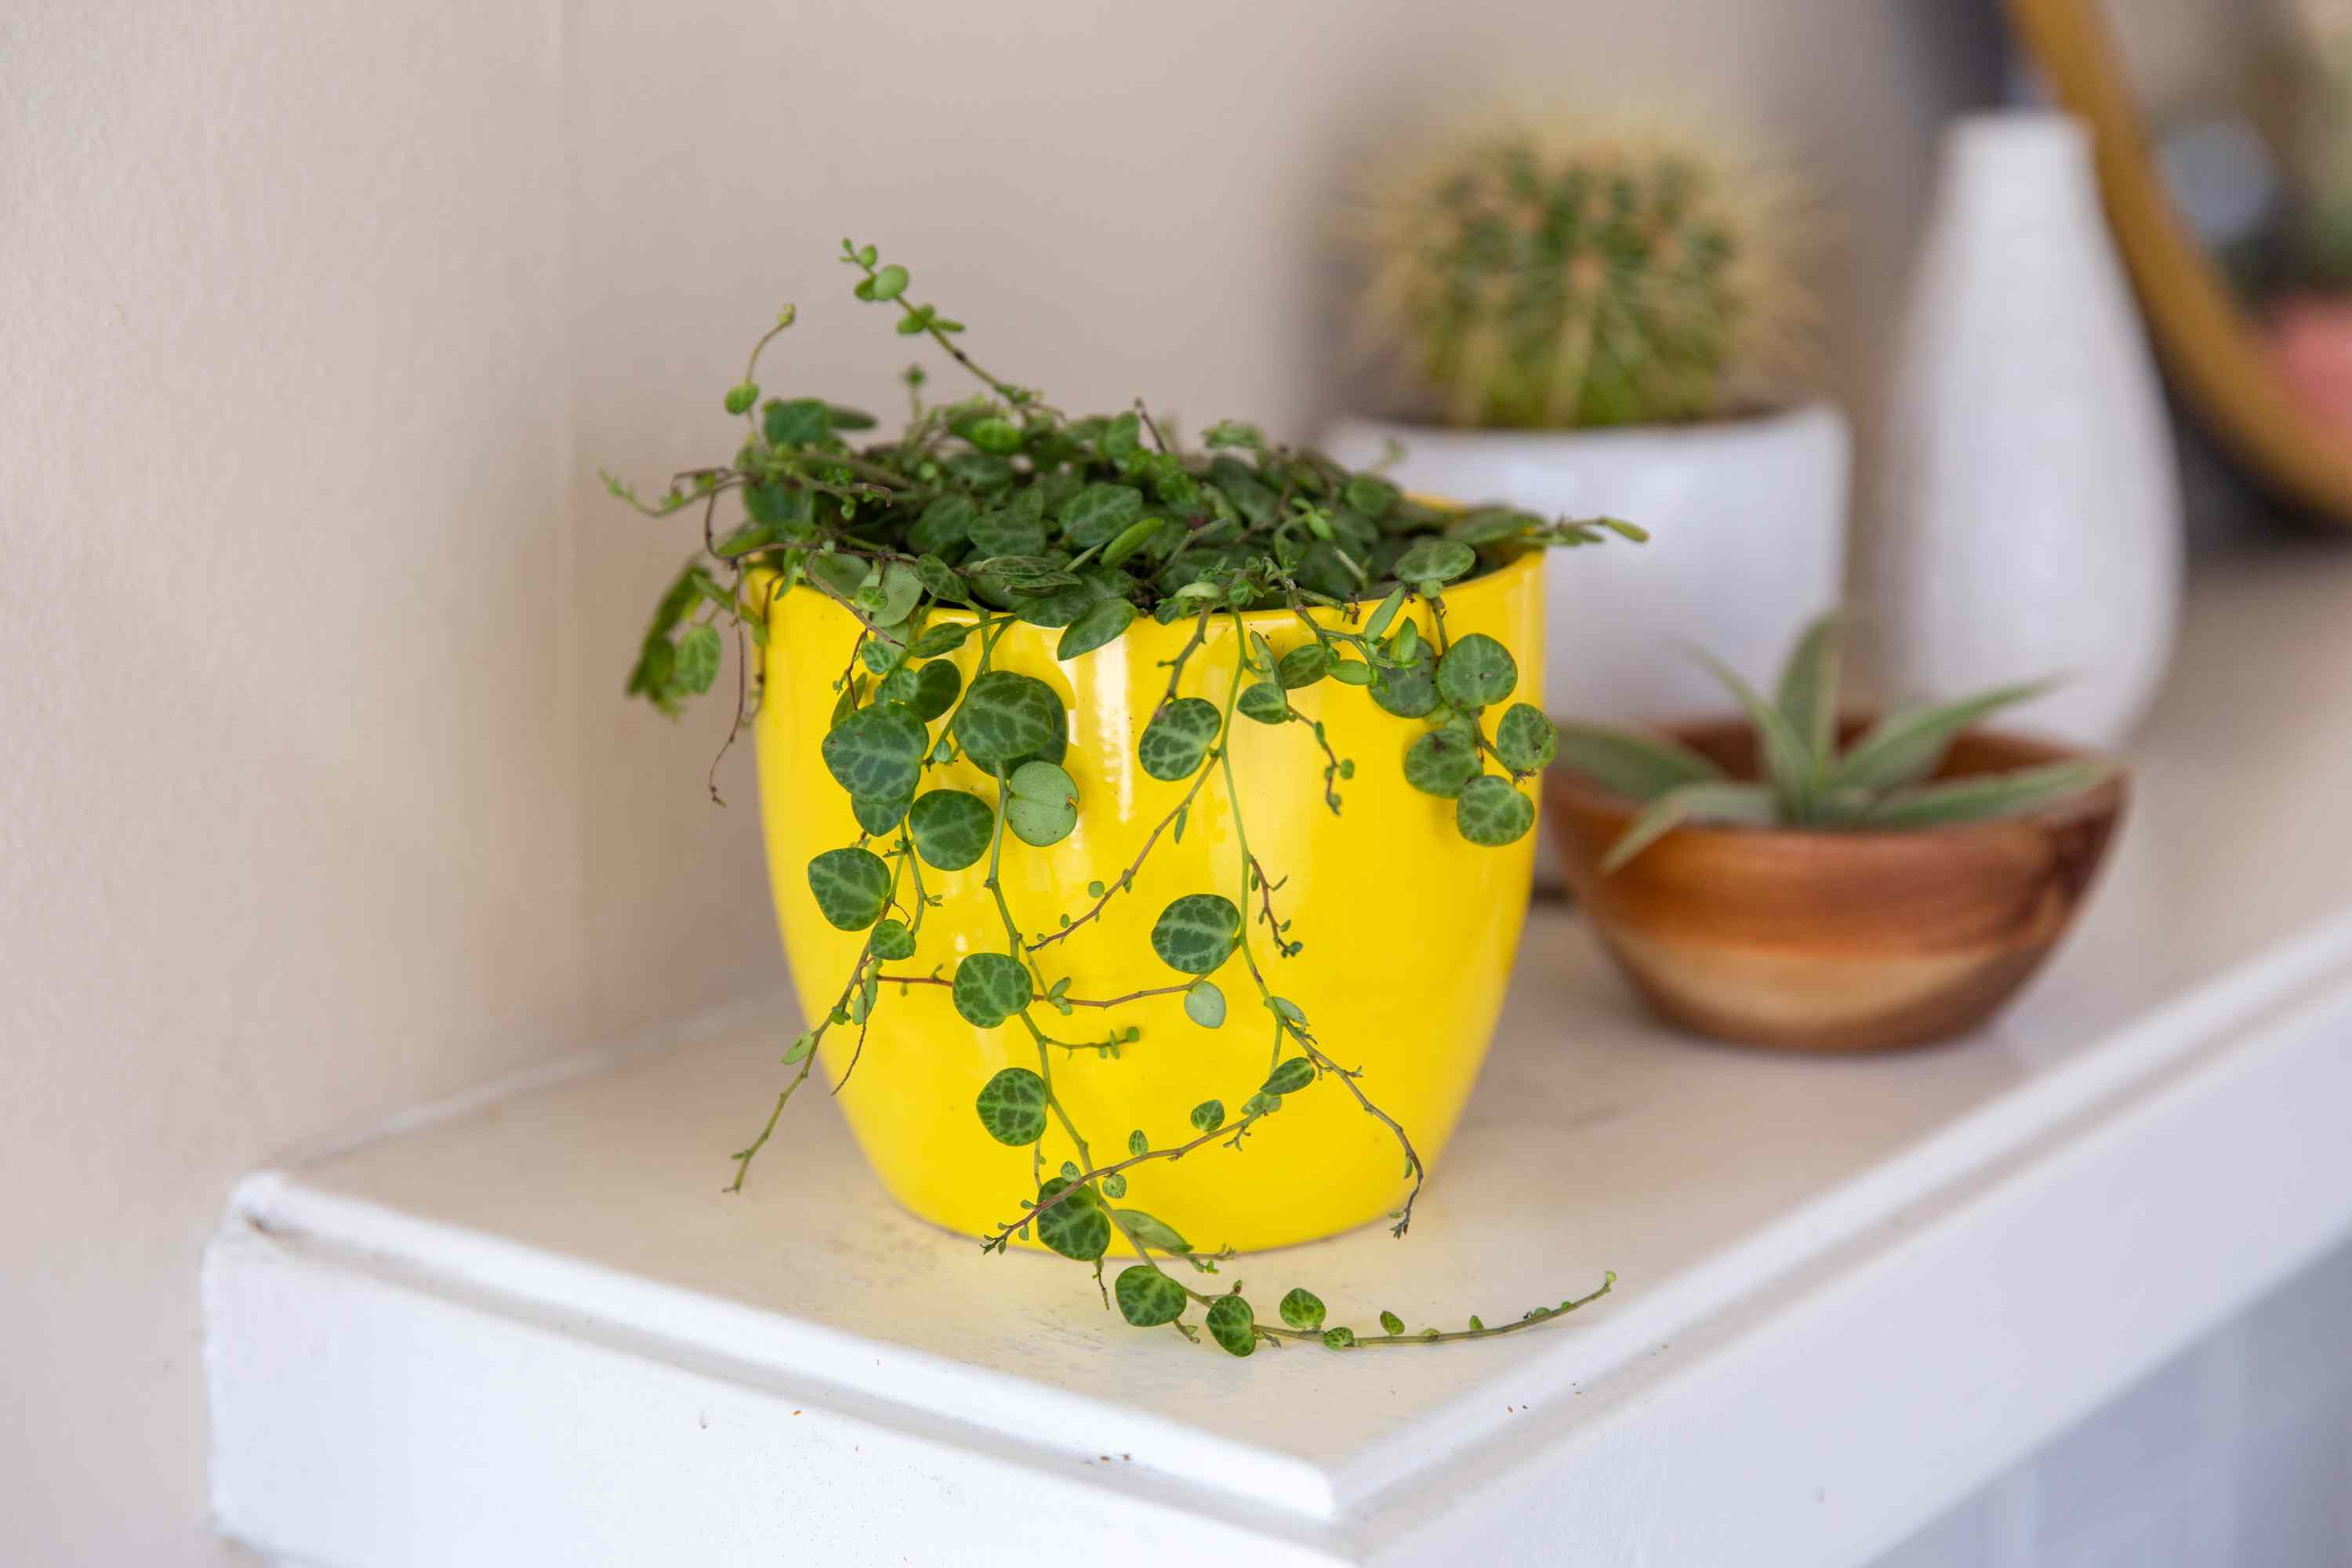 String of turtles in yellow pot on white shelf with other houseplants